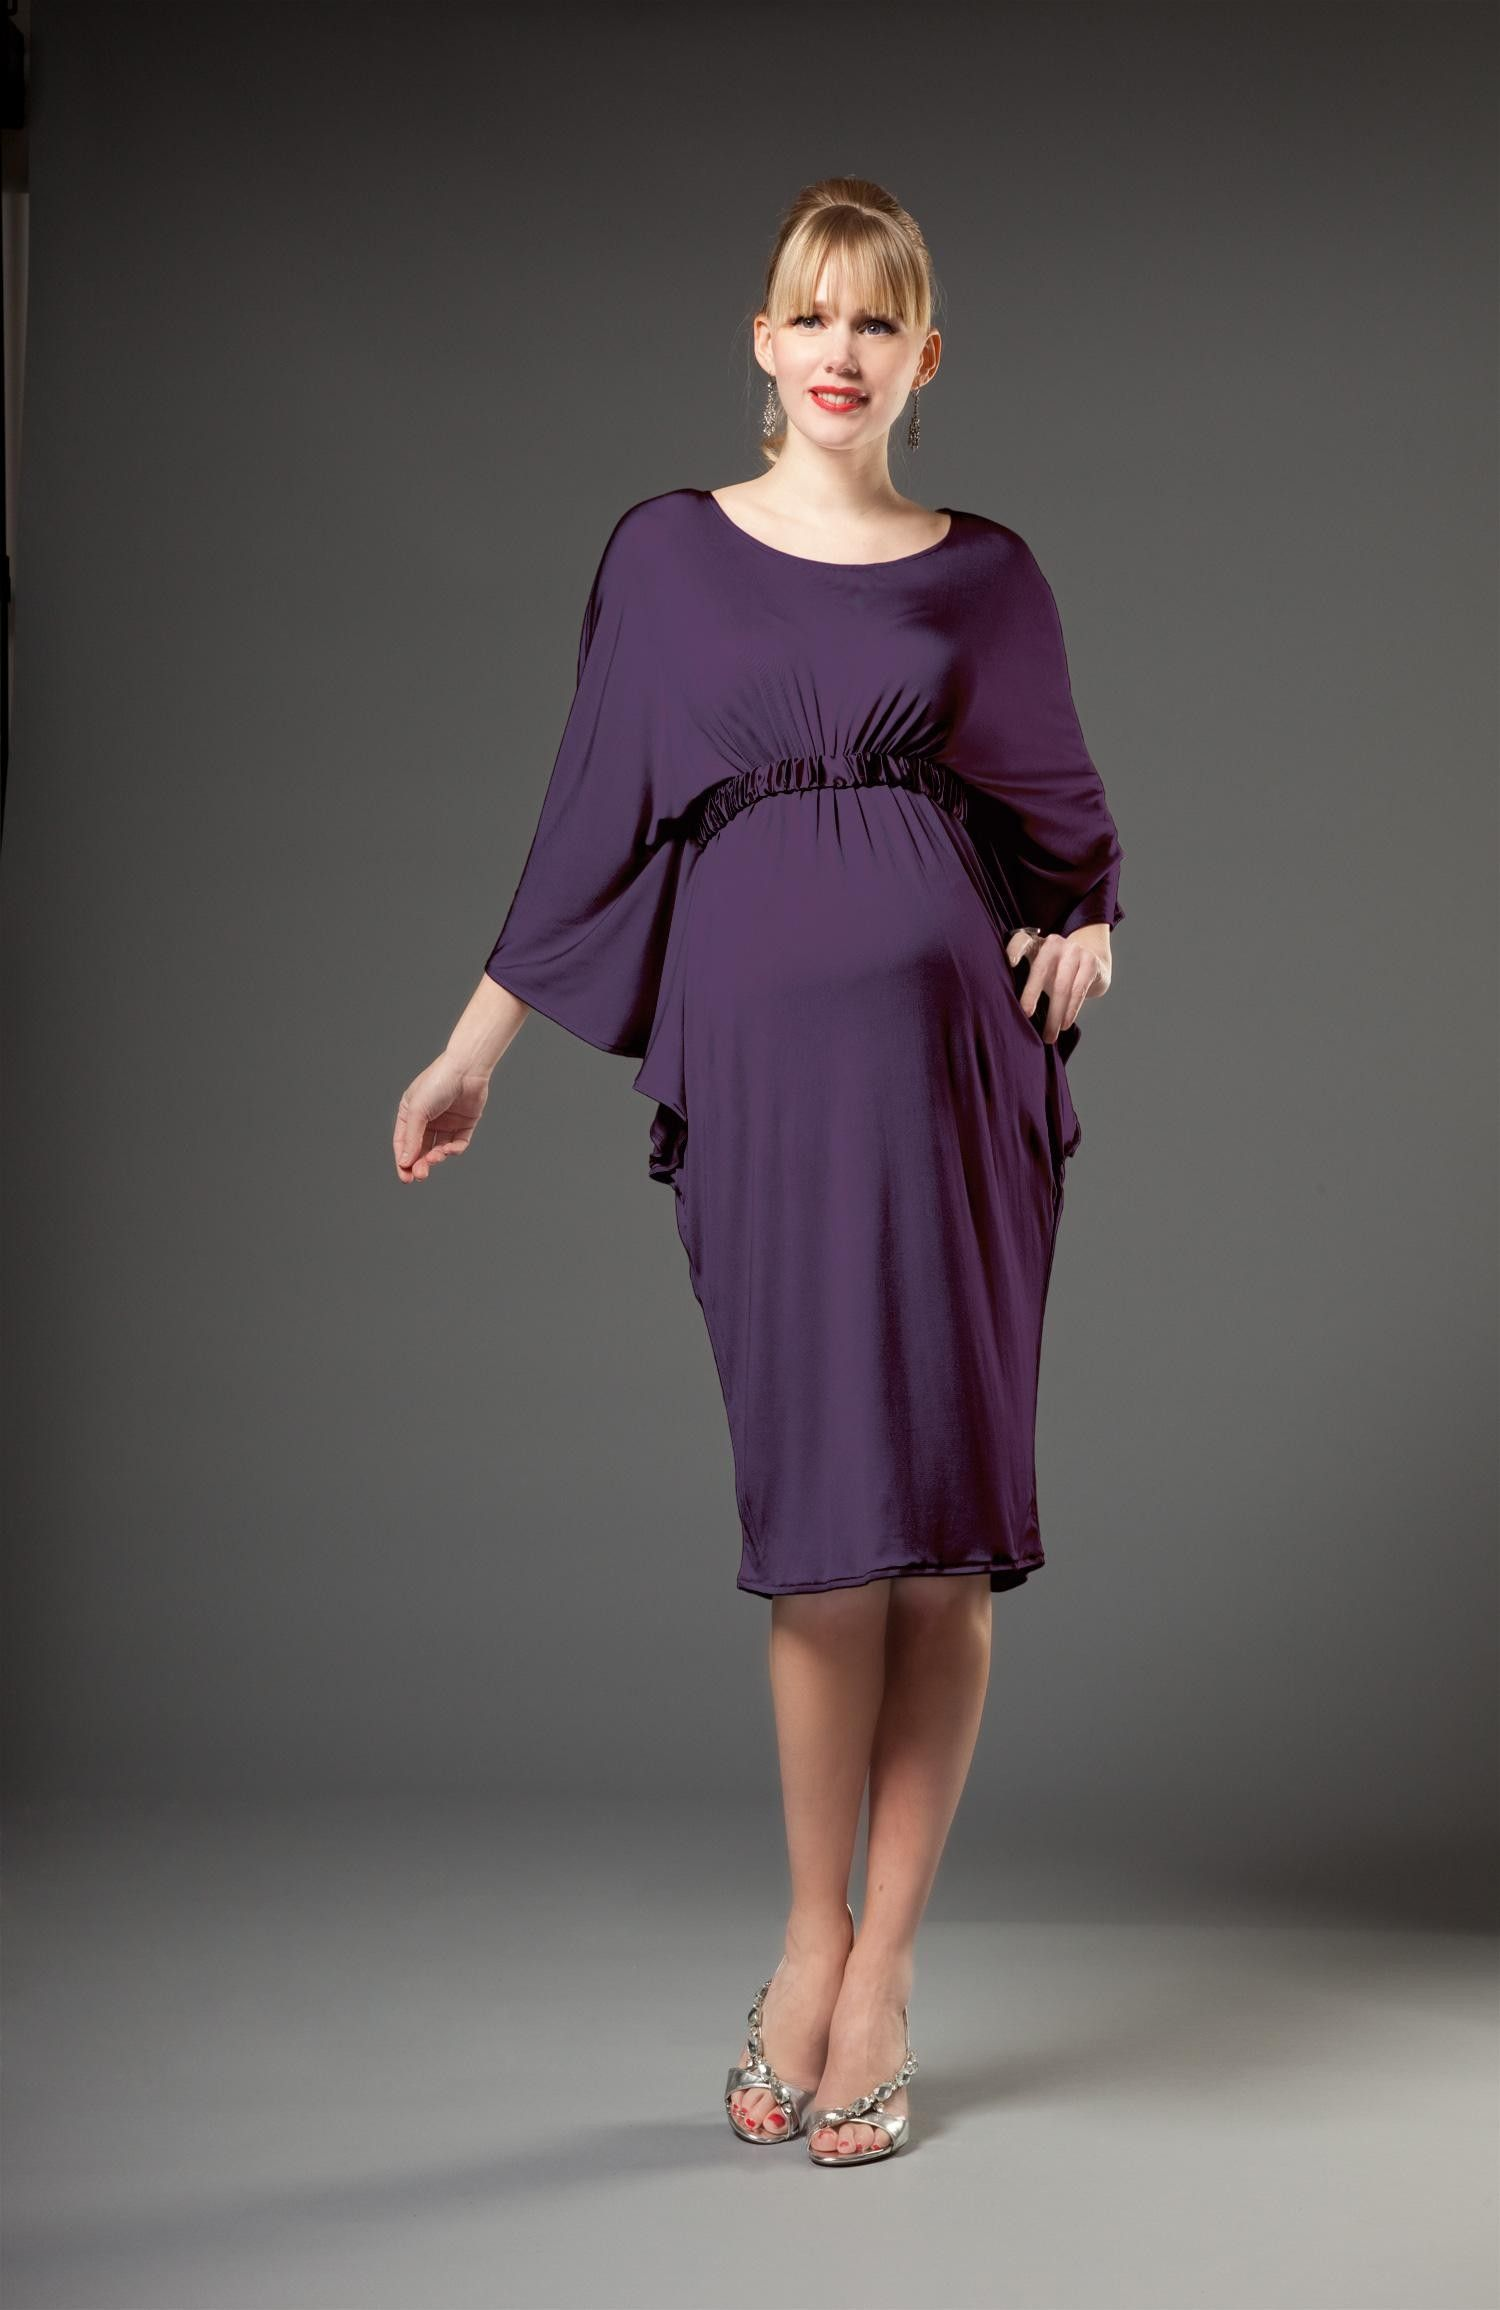 Winter maternity plus size party dresses maternity dresses winter maternity plus size party dresses ombrellifo Image collections